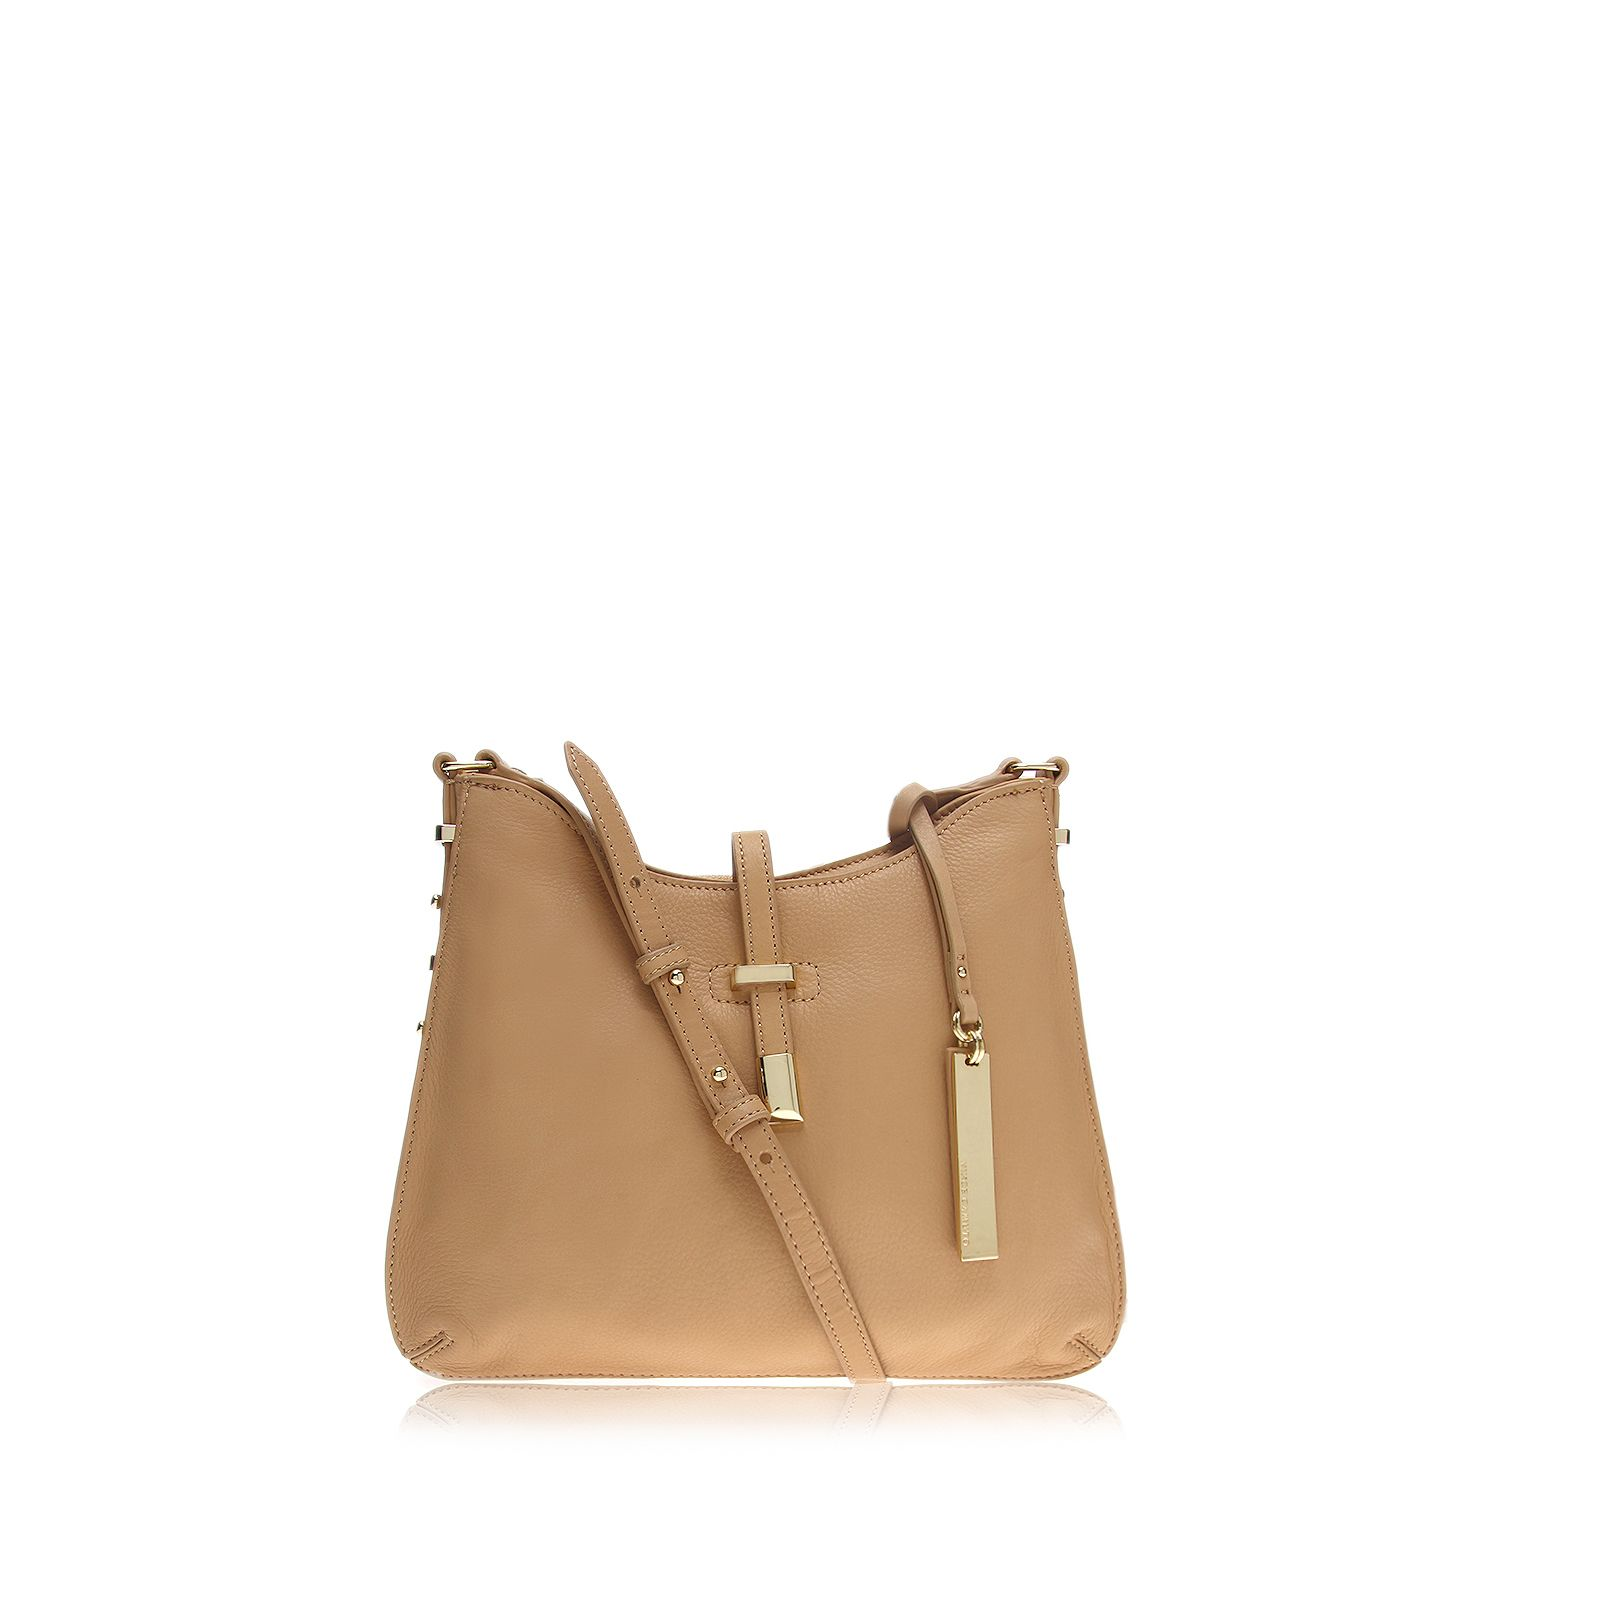 Molly cross-body bag